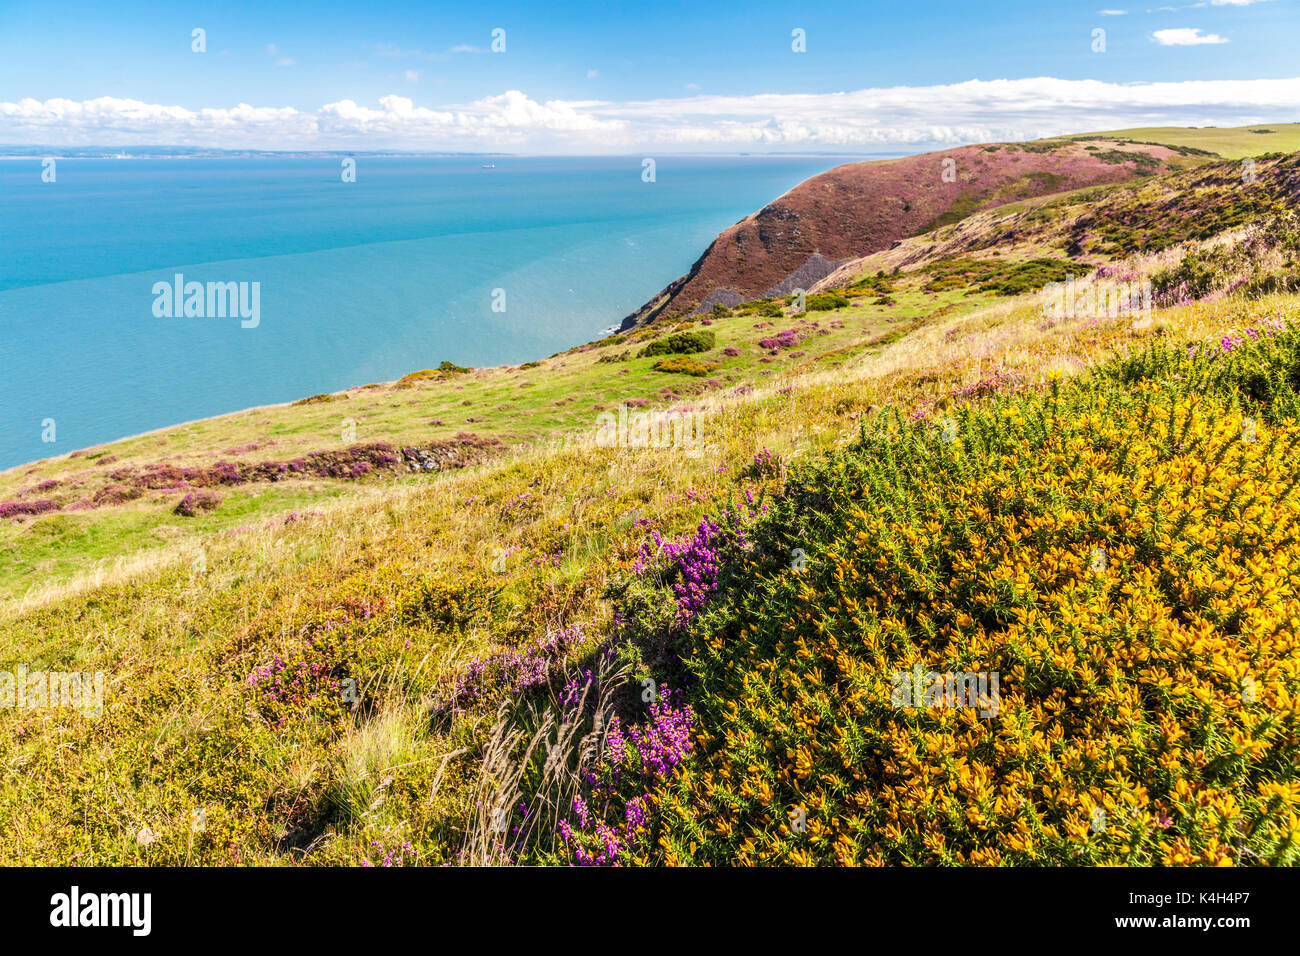 The view over the Bristol Channel from the Southwest Coast Path in the Exmoor National Park,Somerset. - Stock Image